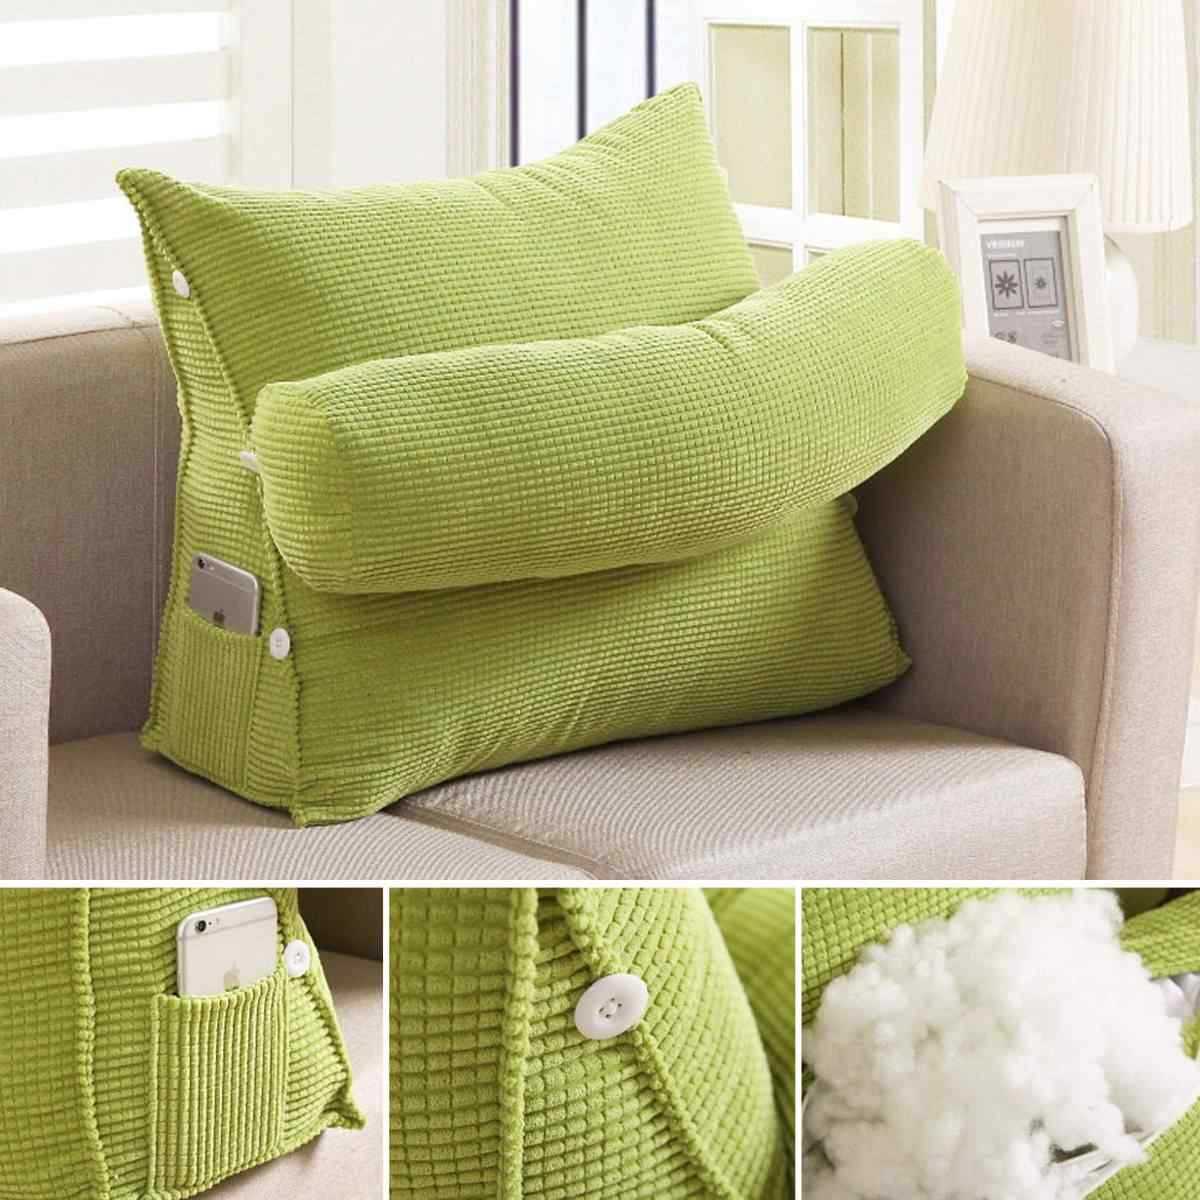 Reading Pillow Bed Triangle Sofa Cushion Back Pillow Bed Backrest Office Chair Pillow Support Waist Cushion Lounger Tv Reading Lumbar Home Decor